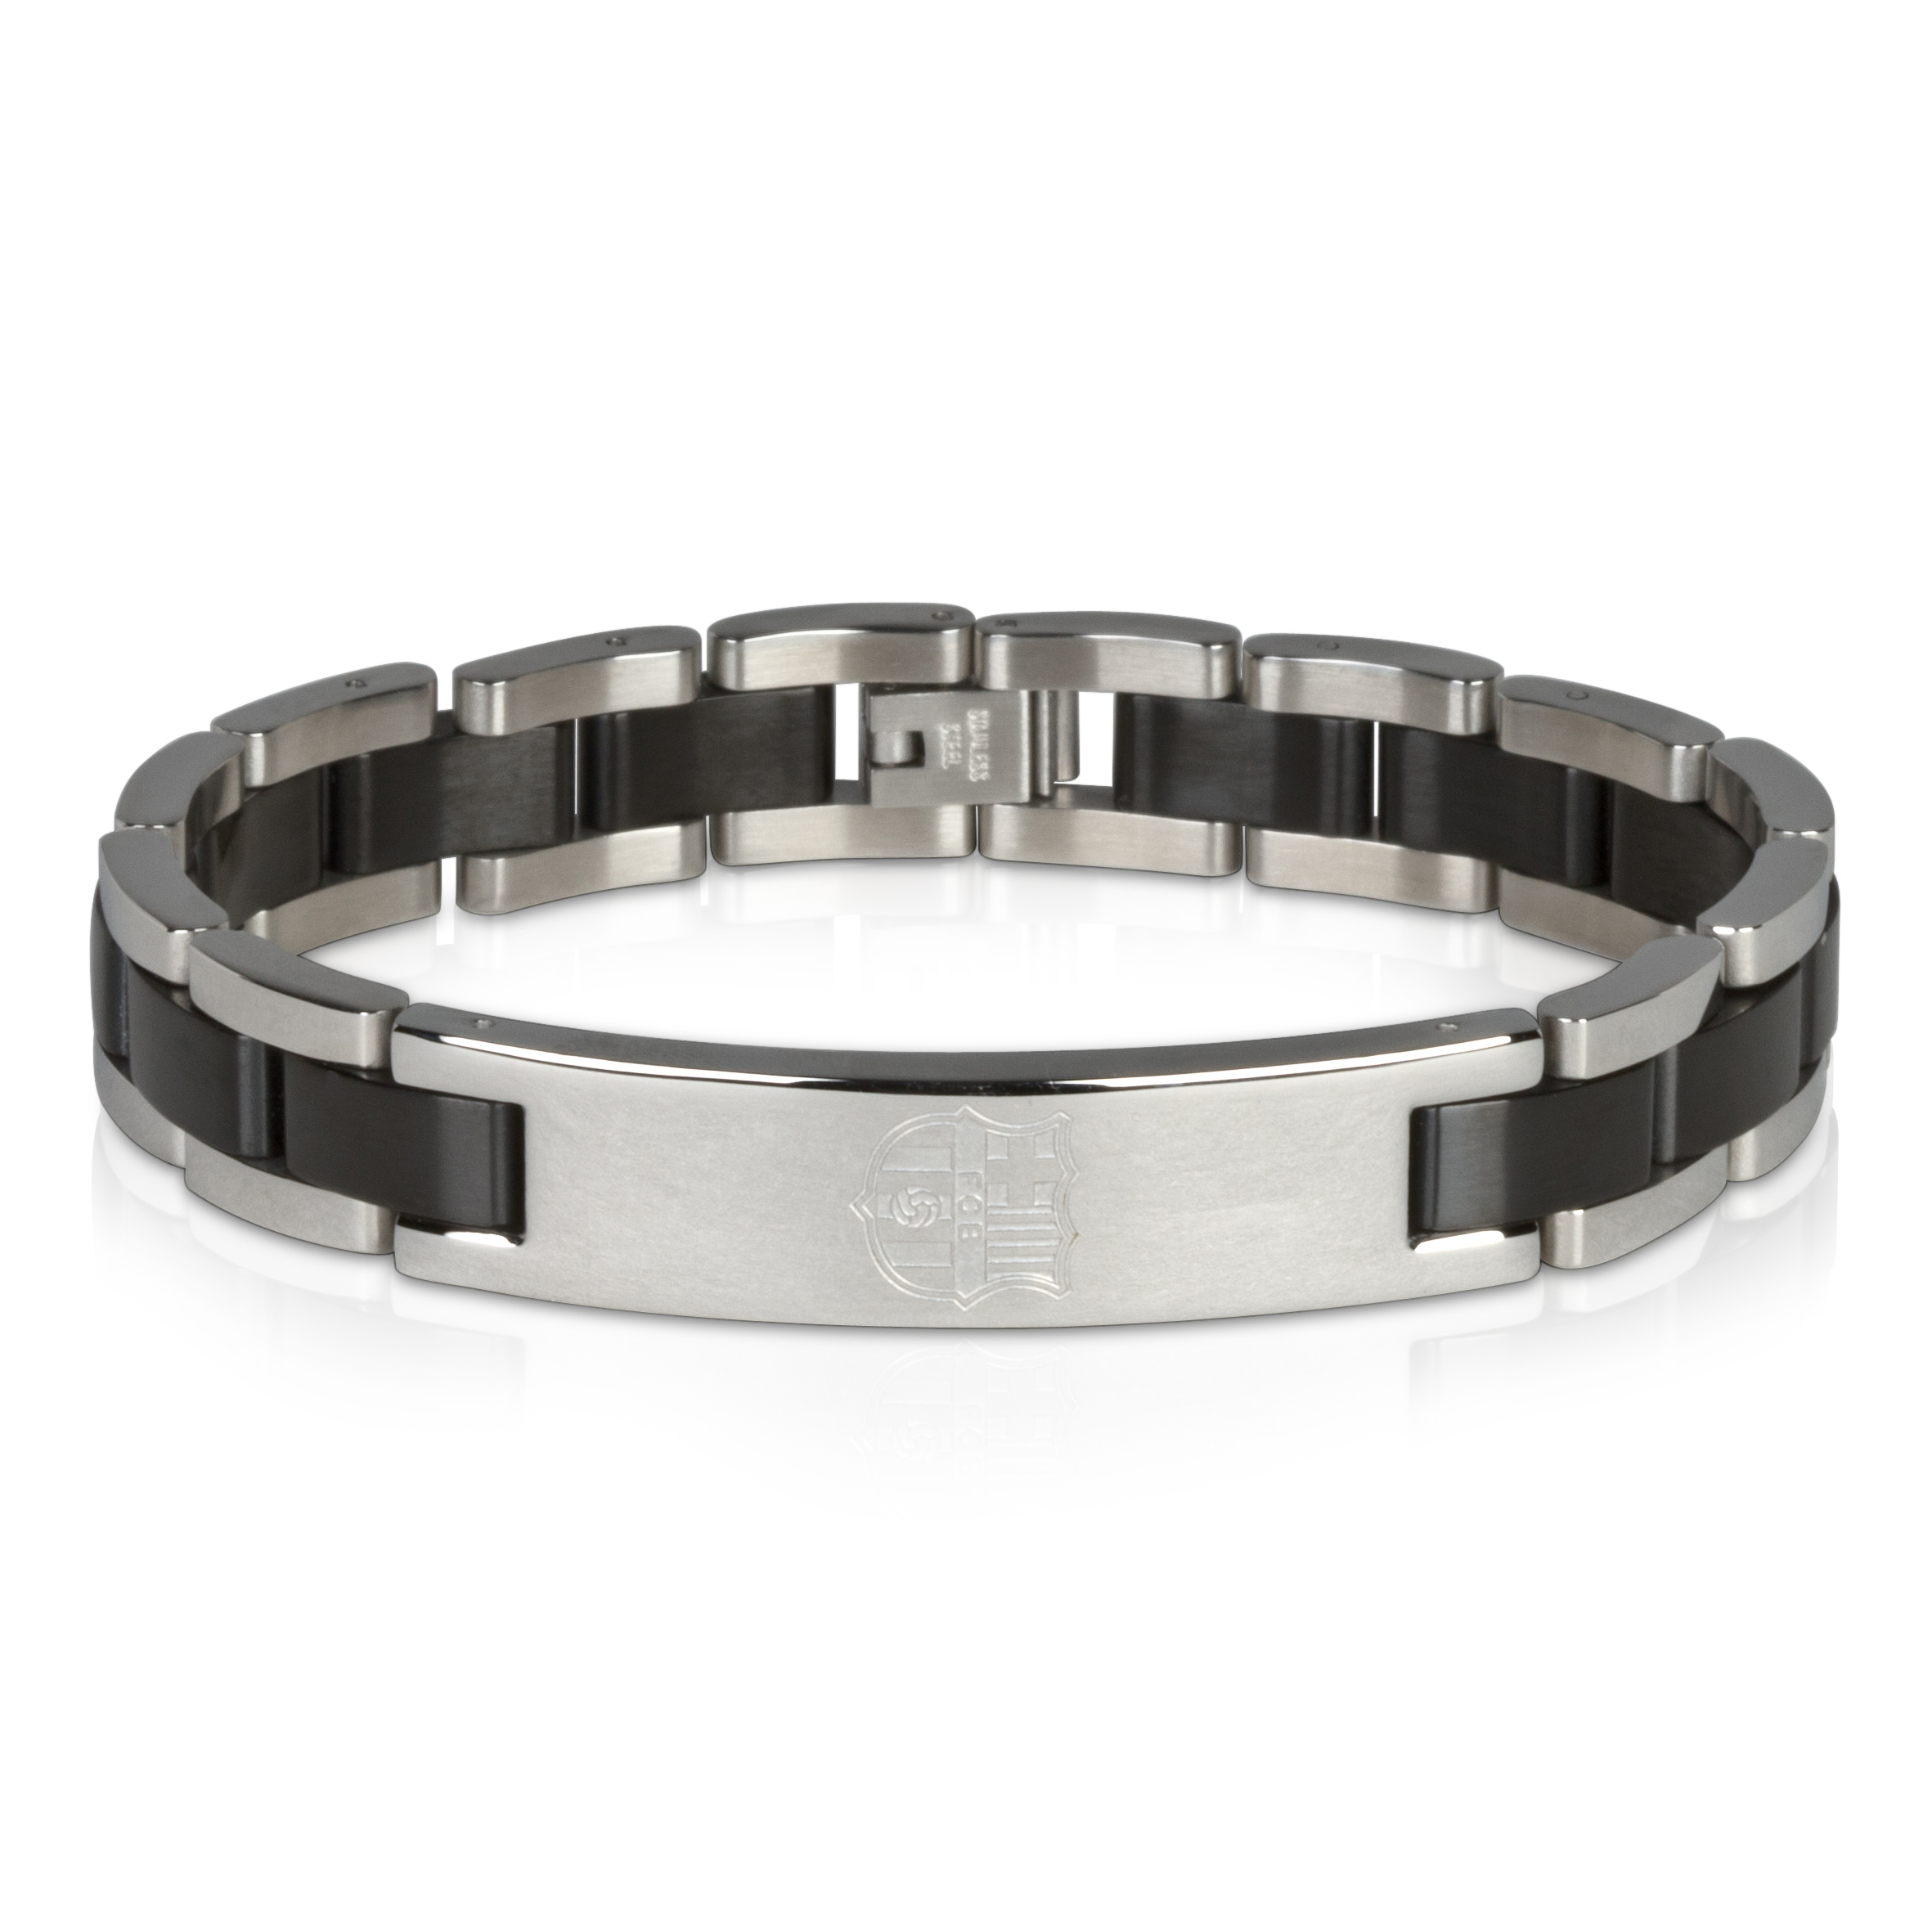 Barcelona Crest Bracelet with Black Inlay - Stainless Steel